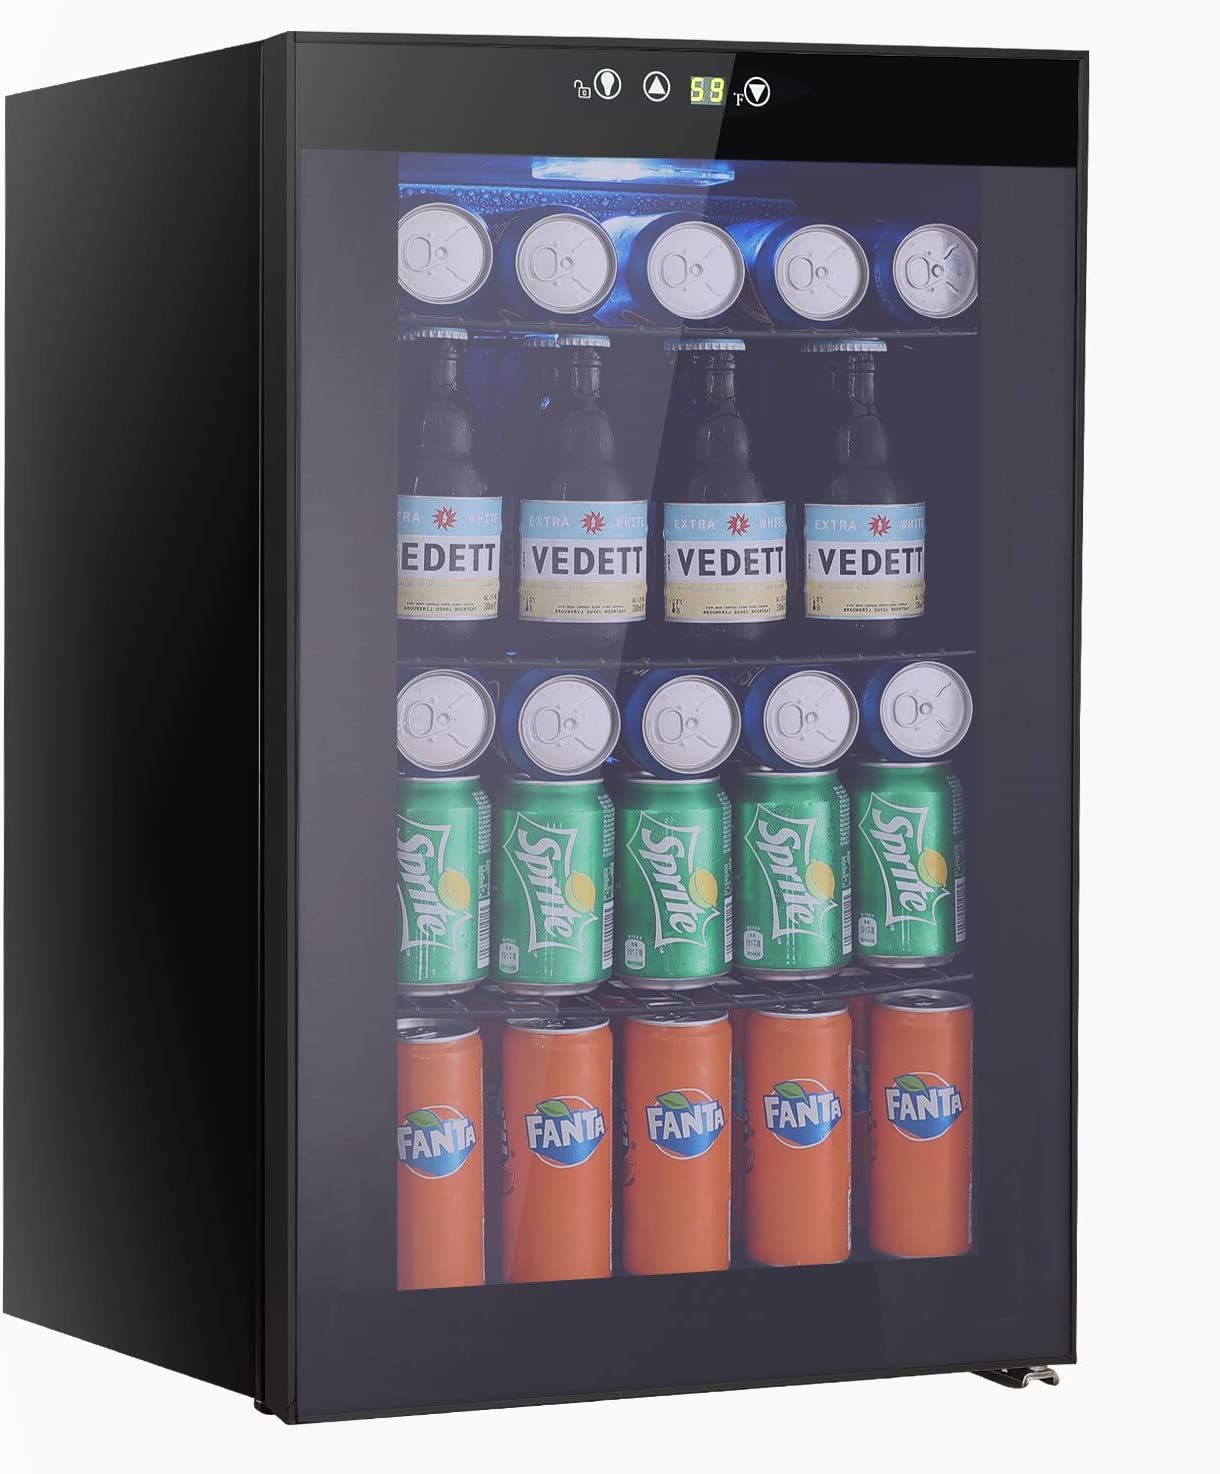 Beverage Refrigerator And Cooler 85 Can Or 60 Bottles Capacity With Smoky Gray Glass Door For Soda In 2020 Beverage Refrigerator Drinks Fridge Refrigerator Cooler